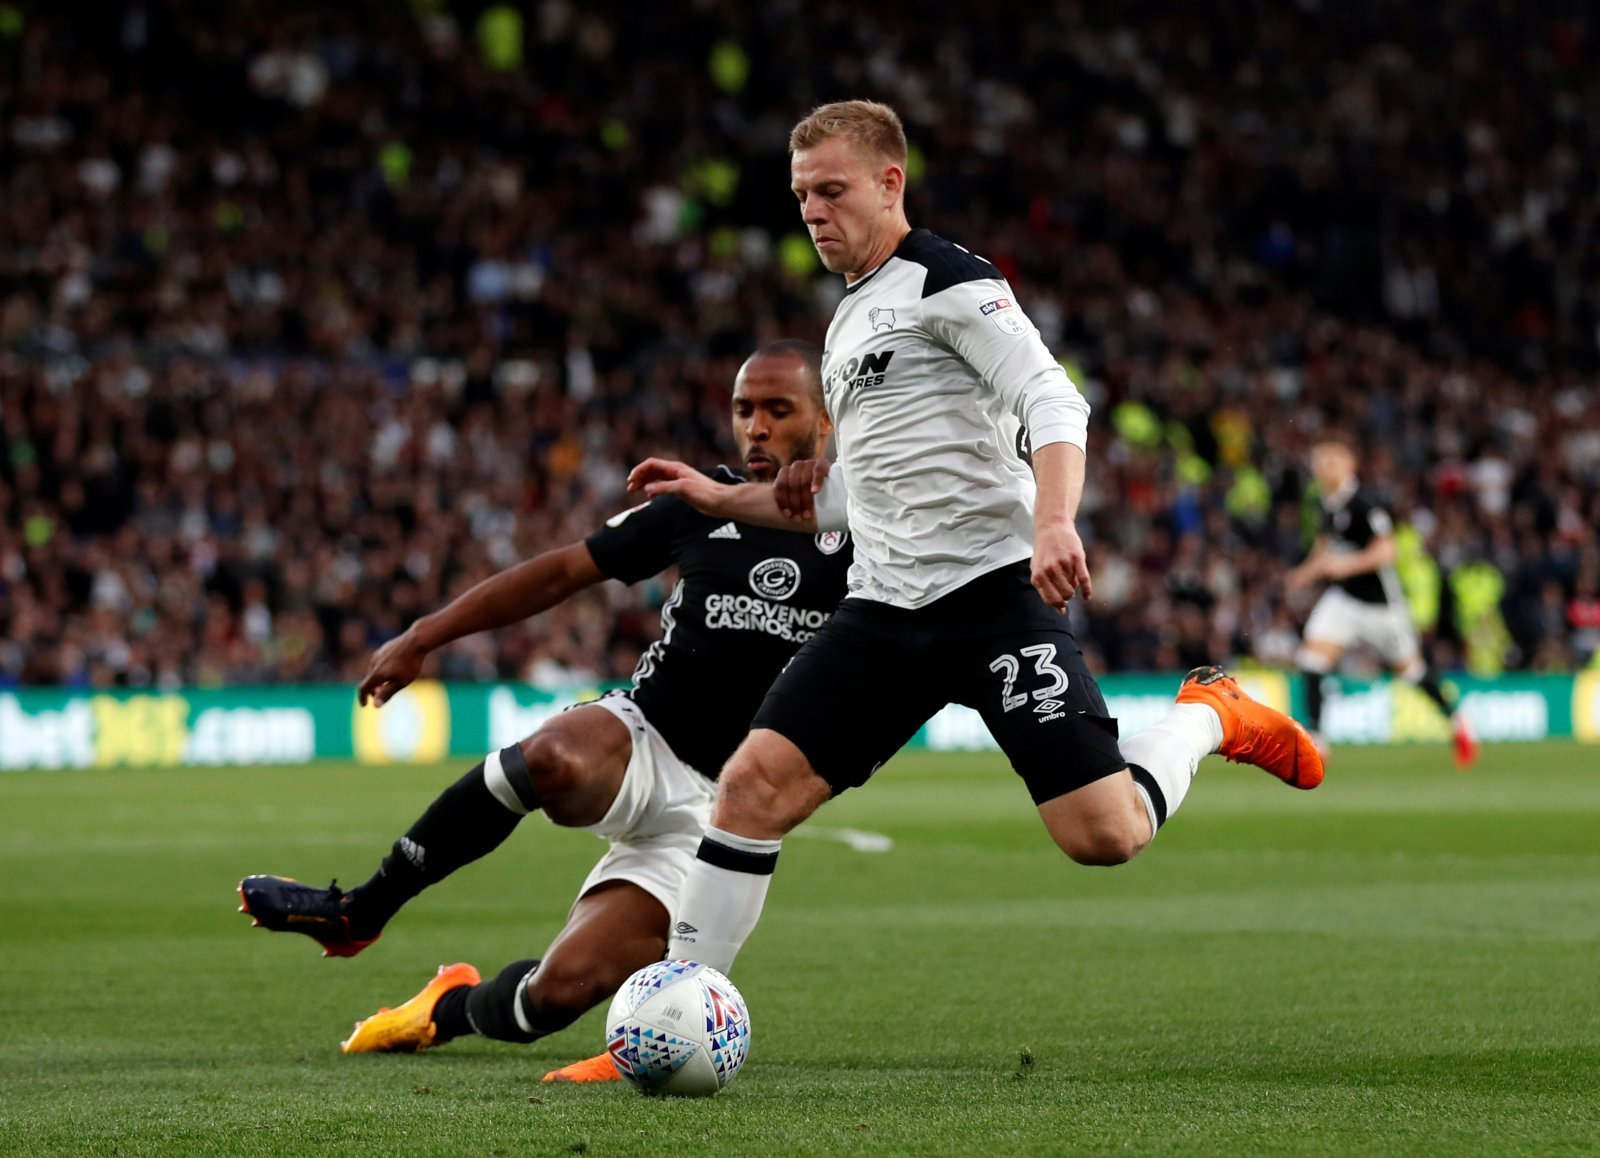 Matej Vydra's arrival at Leeds could be a game changer for Marcelo Bielsa